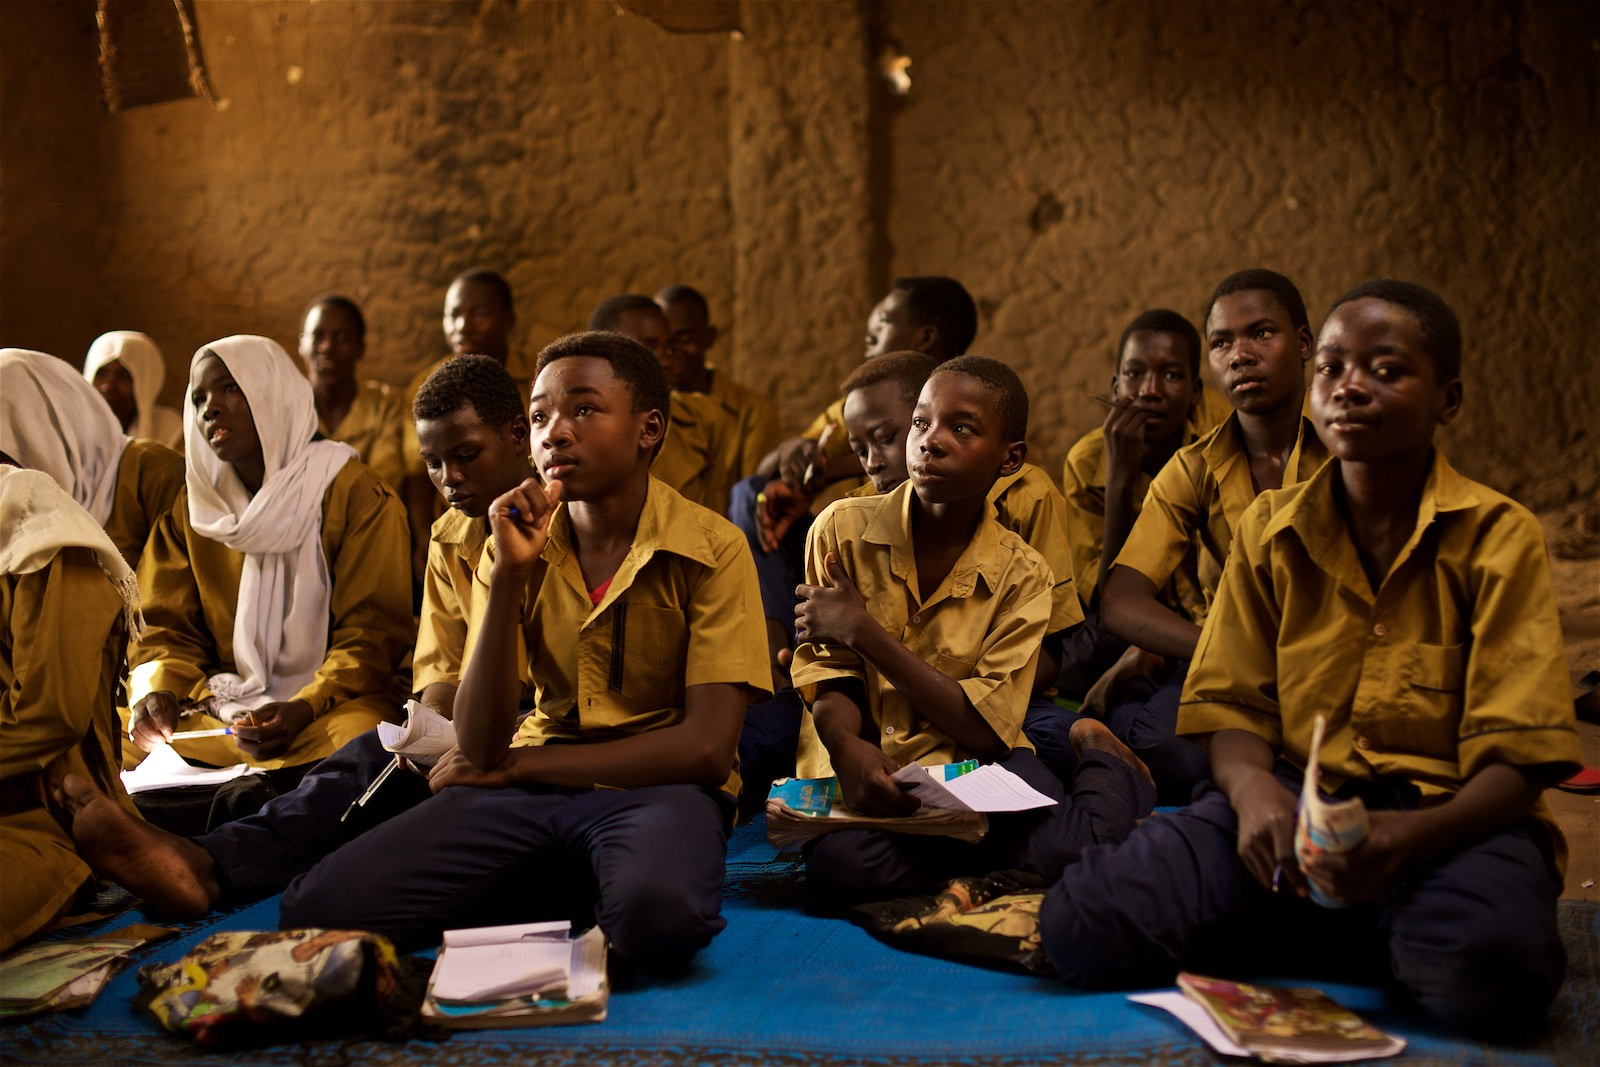 denis-bosnic-chad-school-jrs-jesuit-refugee-service-students-education-mercy-in-motion-2.jpg